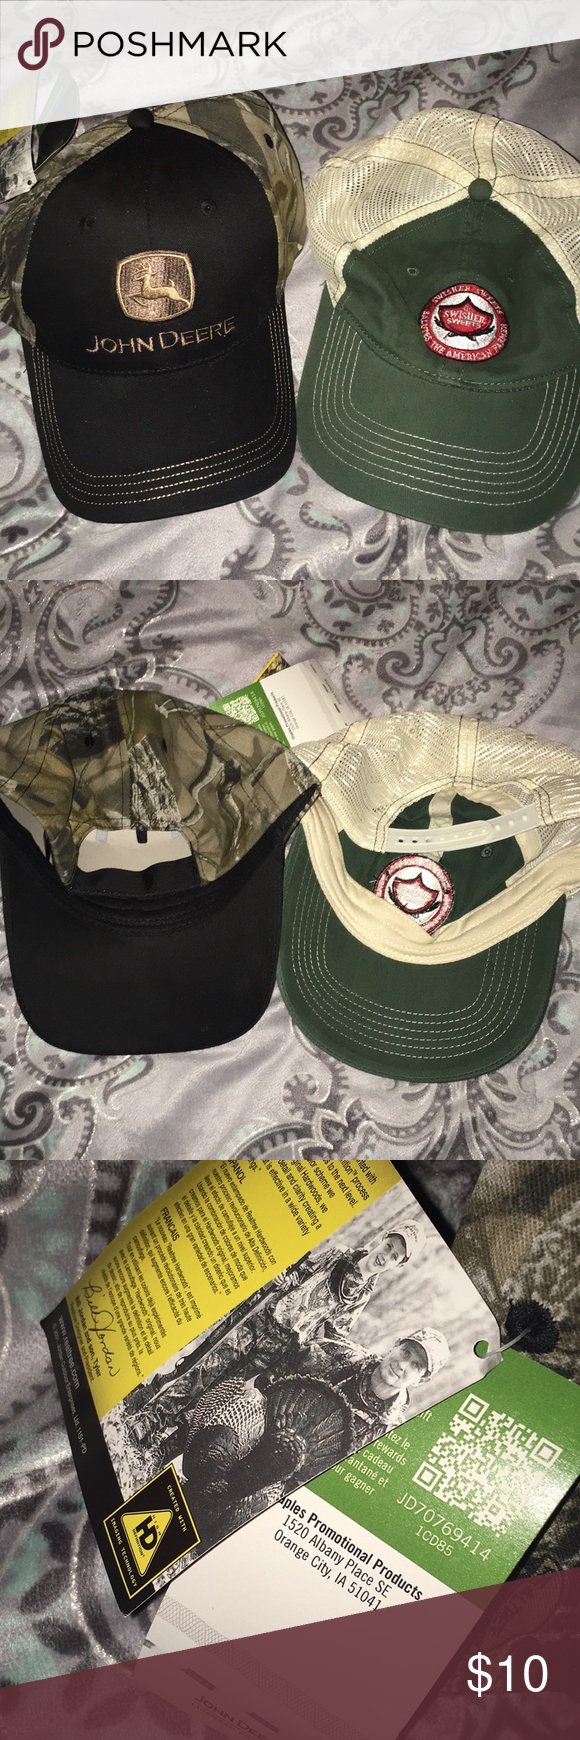 00bbc867149 John Deere Hat 🦌 Brand new never worn. Camo John Deer hat with extra  swisher